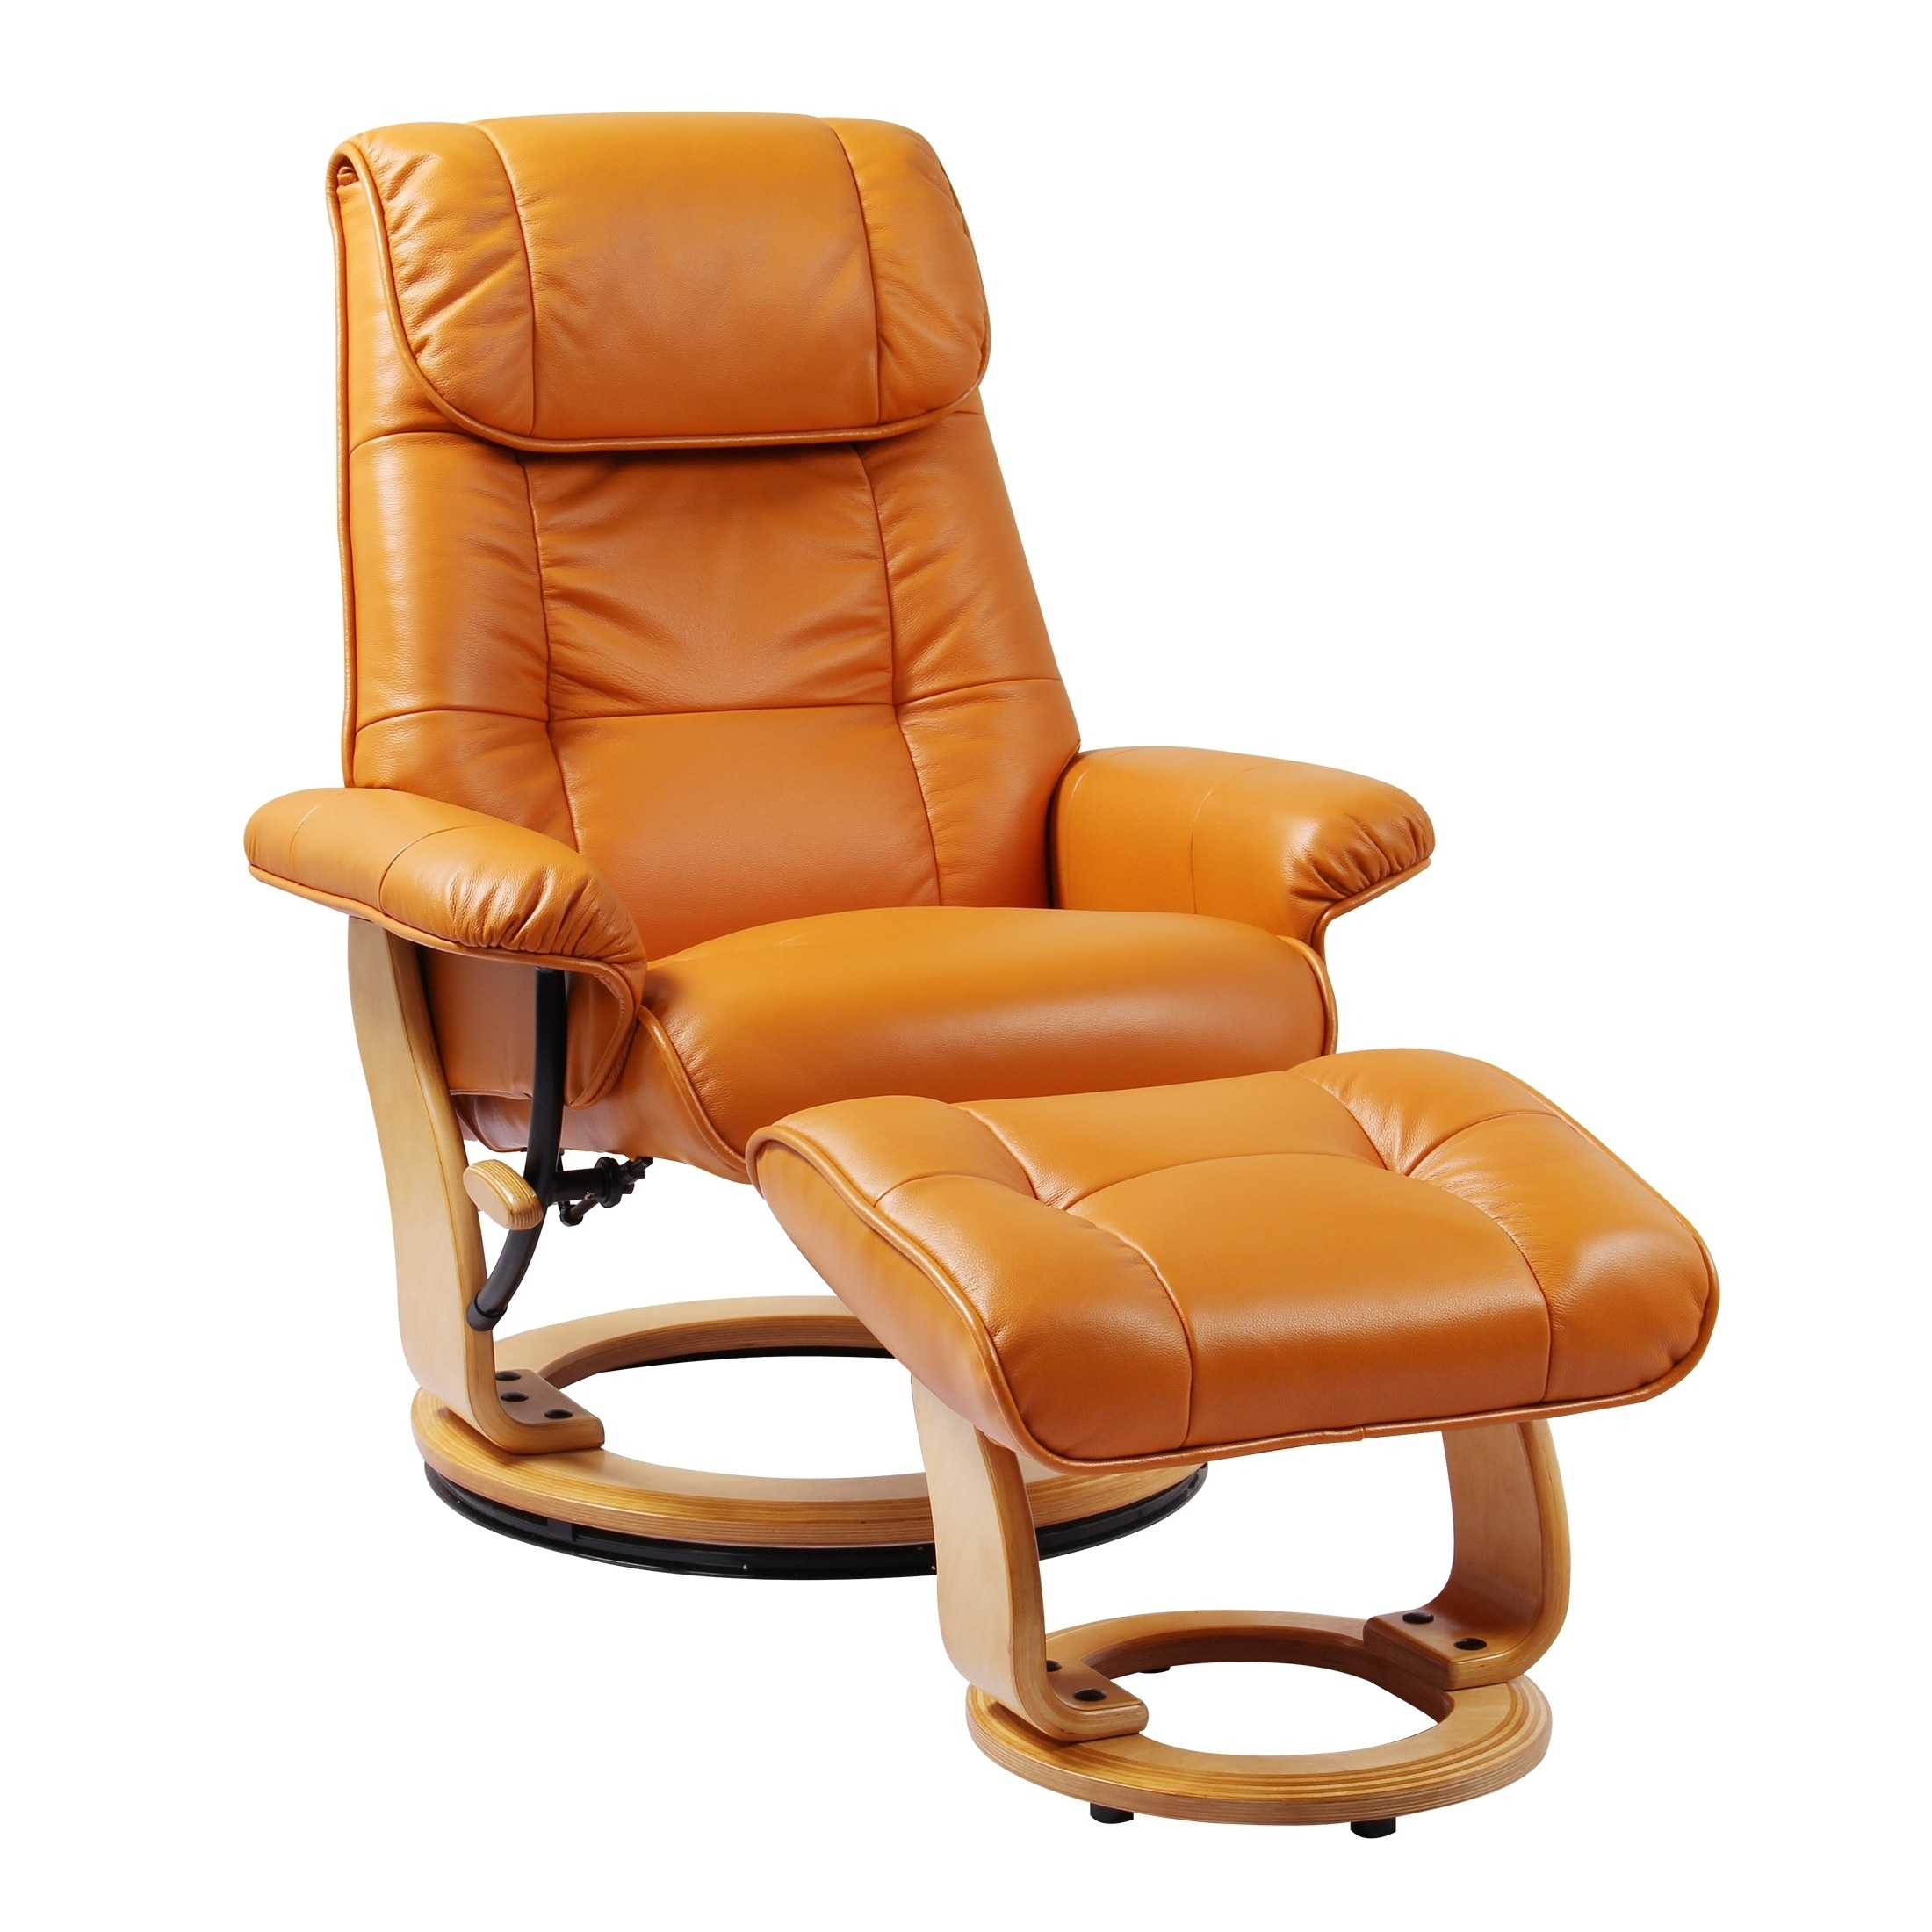 Admirable Cecil Top Grain Leather Recliner And Ottoman Pdpeps Interior Chair Design Pdpepsorg